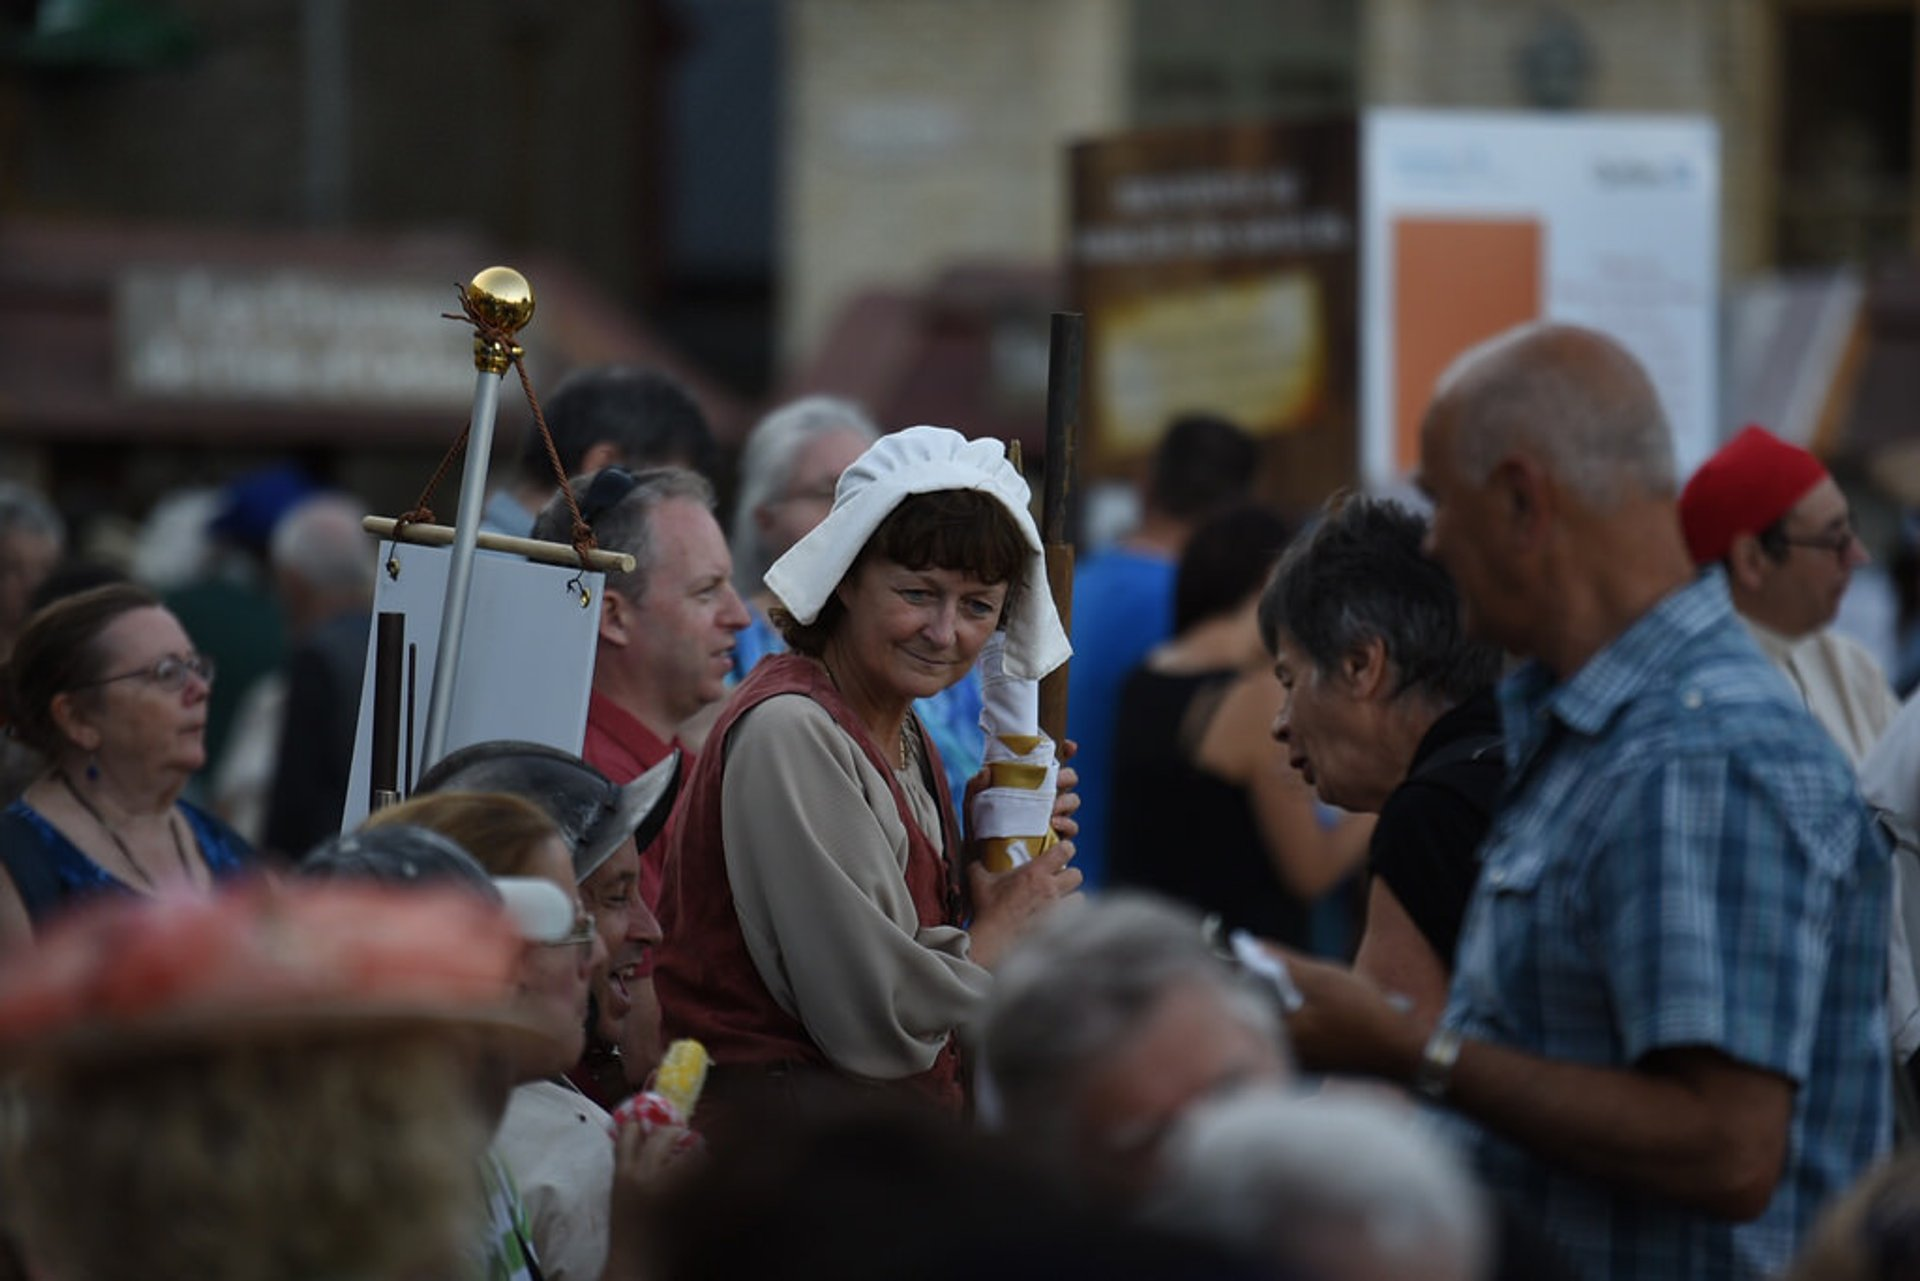 New France Festival (Fêtes de la Nouvelle-France) in Quebec 2019 - Best Time